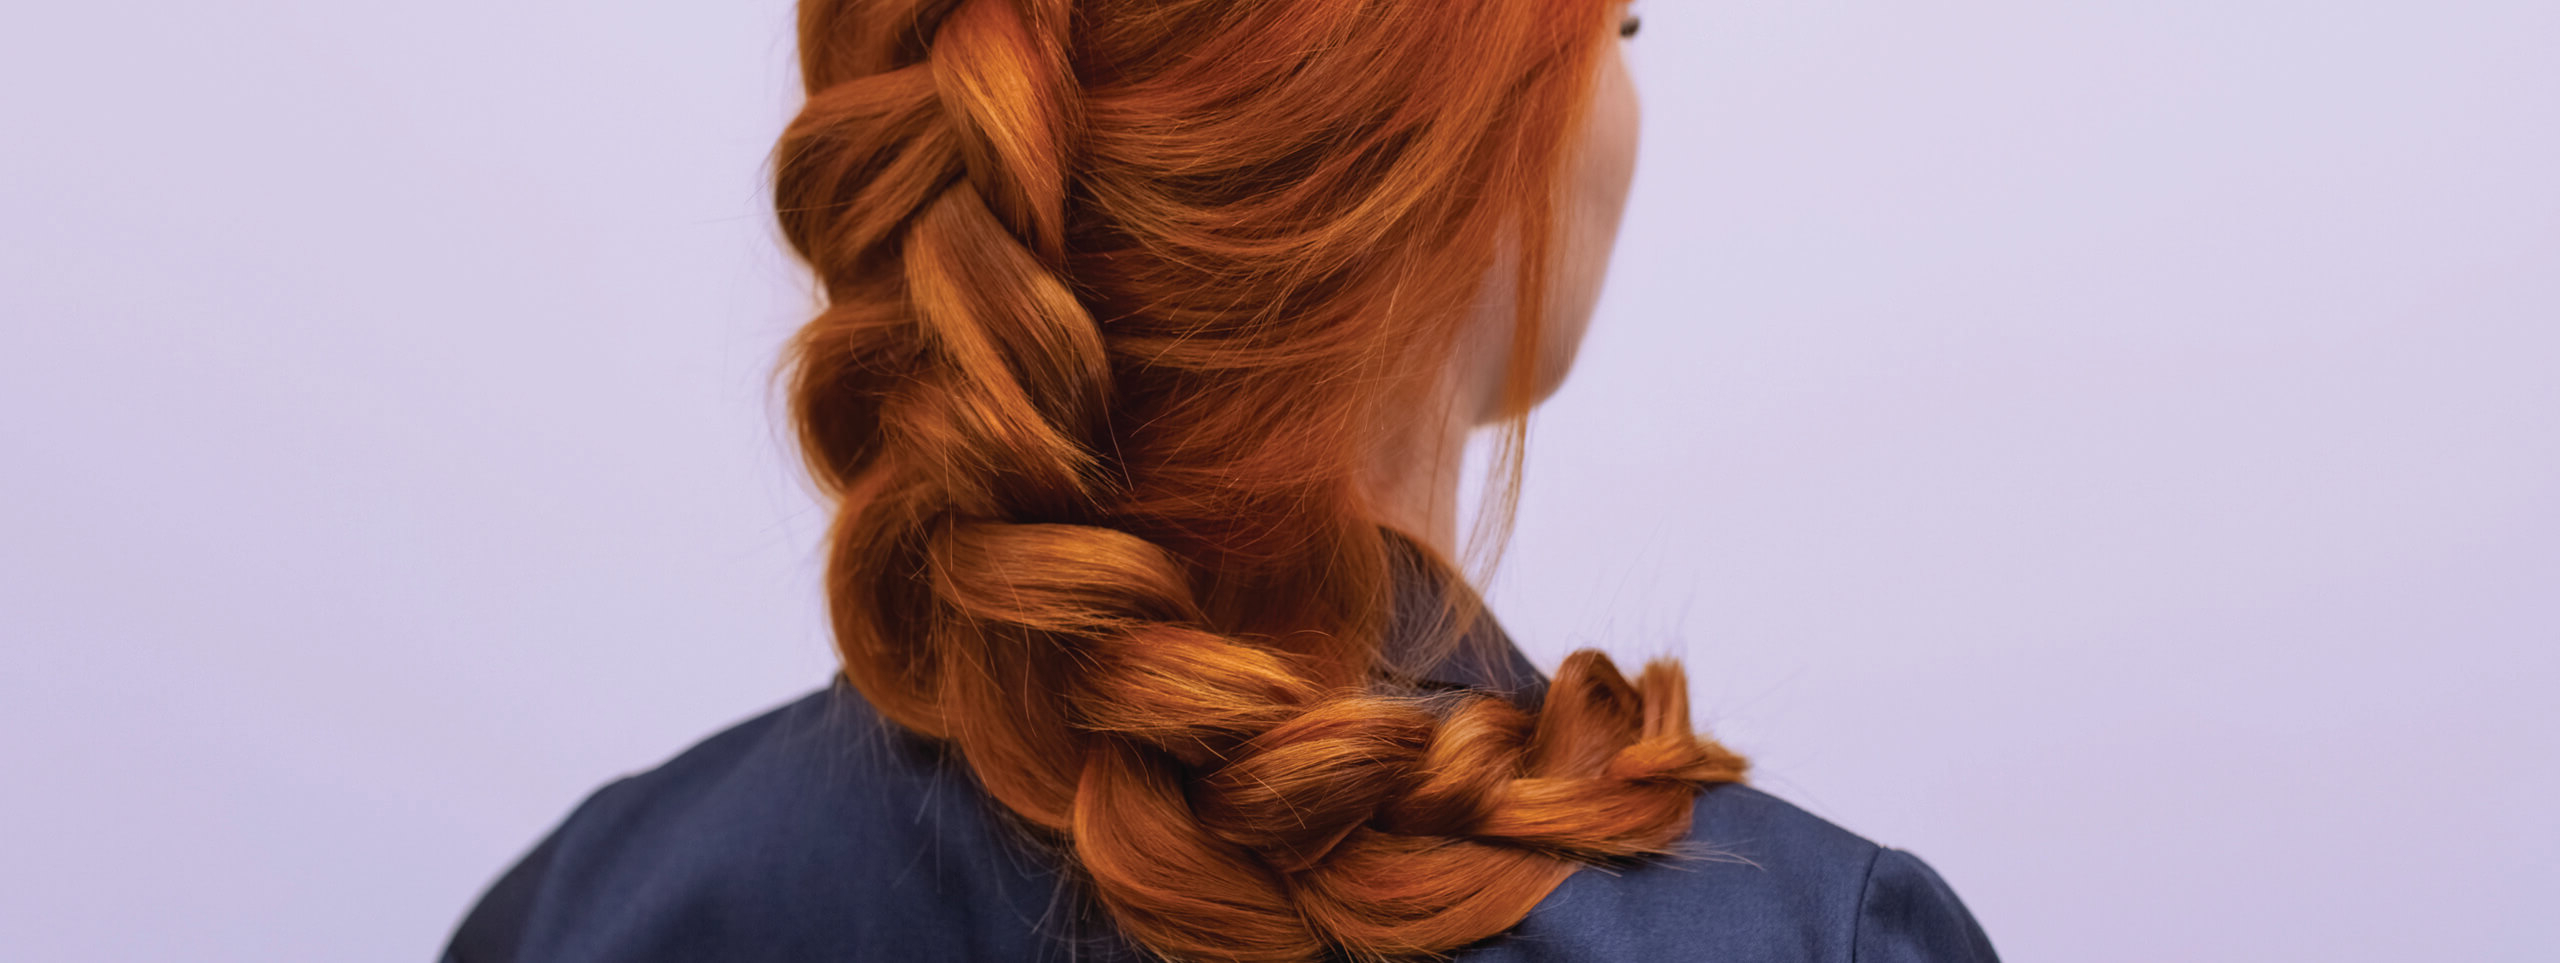 Braid Hairstyles That Are Easy To Try With Regard To Trendy Brown Woven Updo Braid Hairstyles (View 11 of 20)